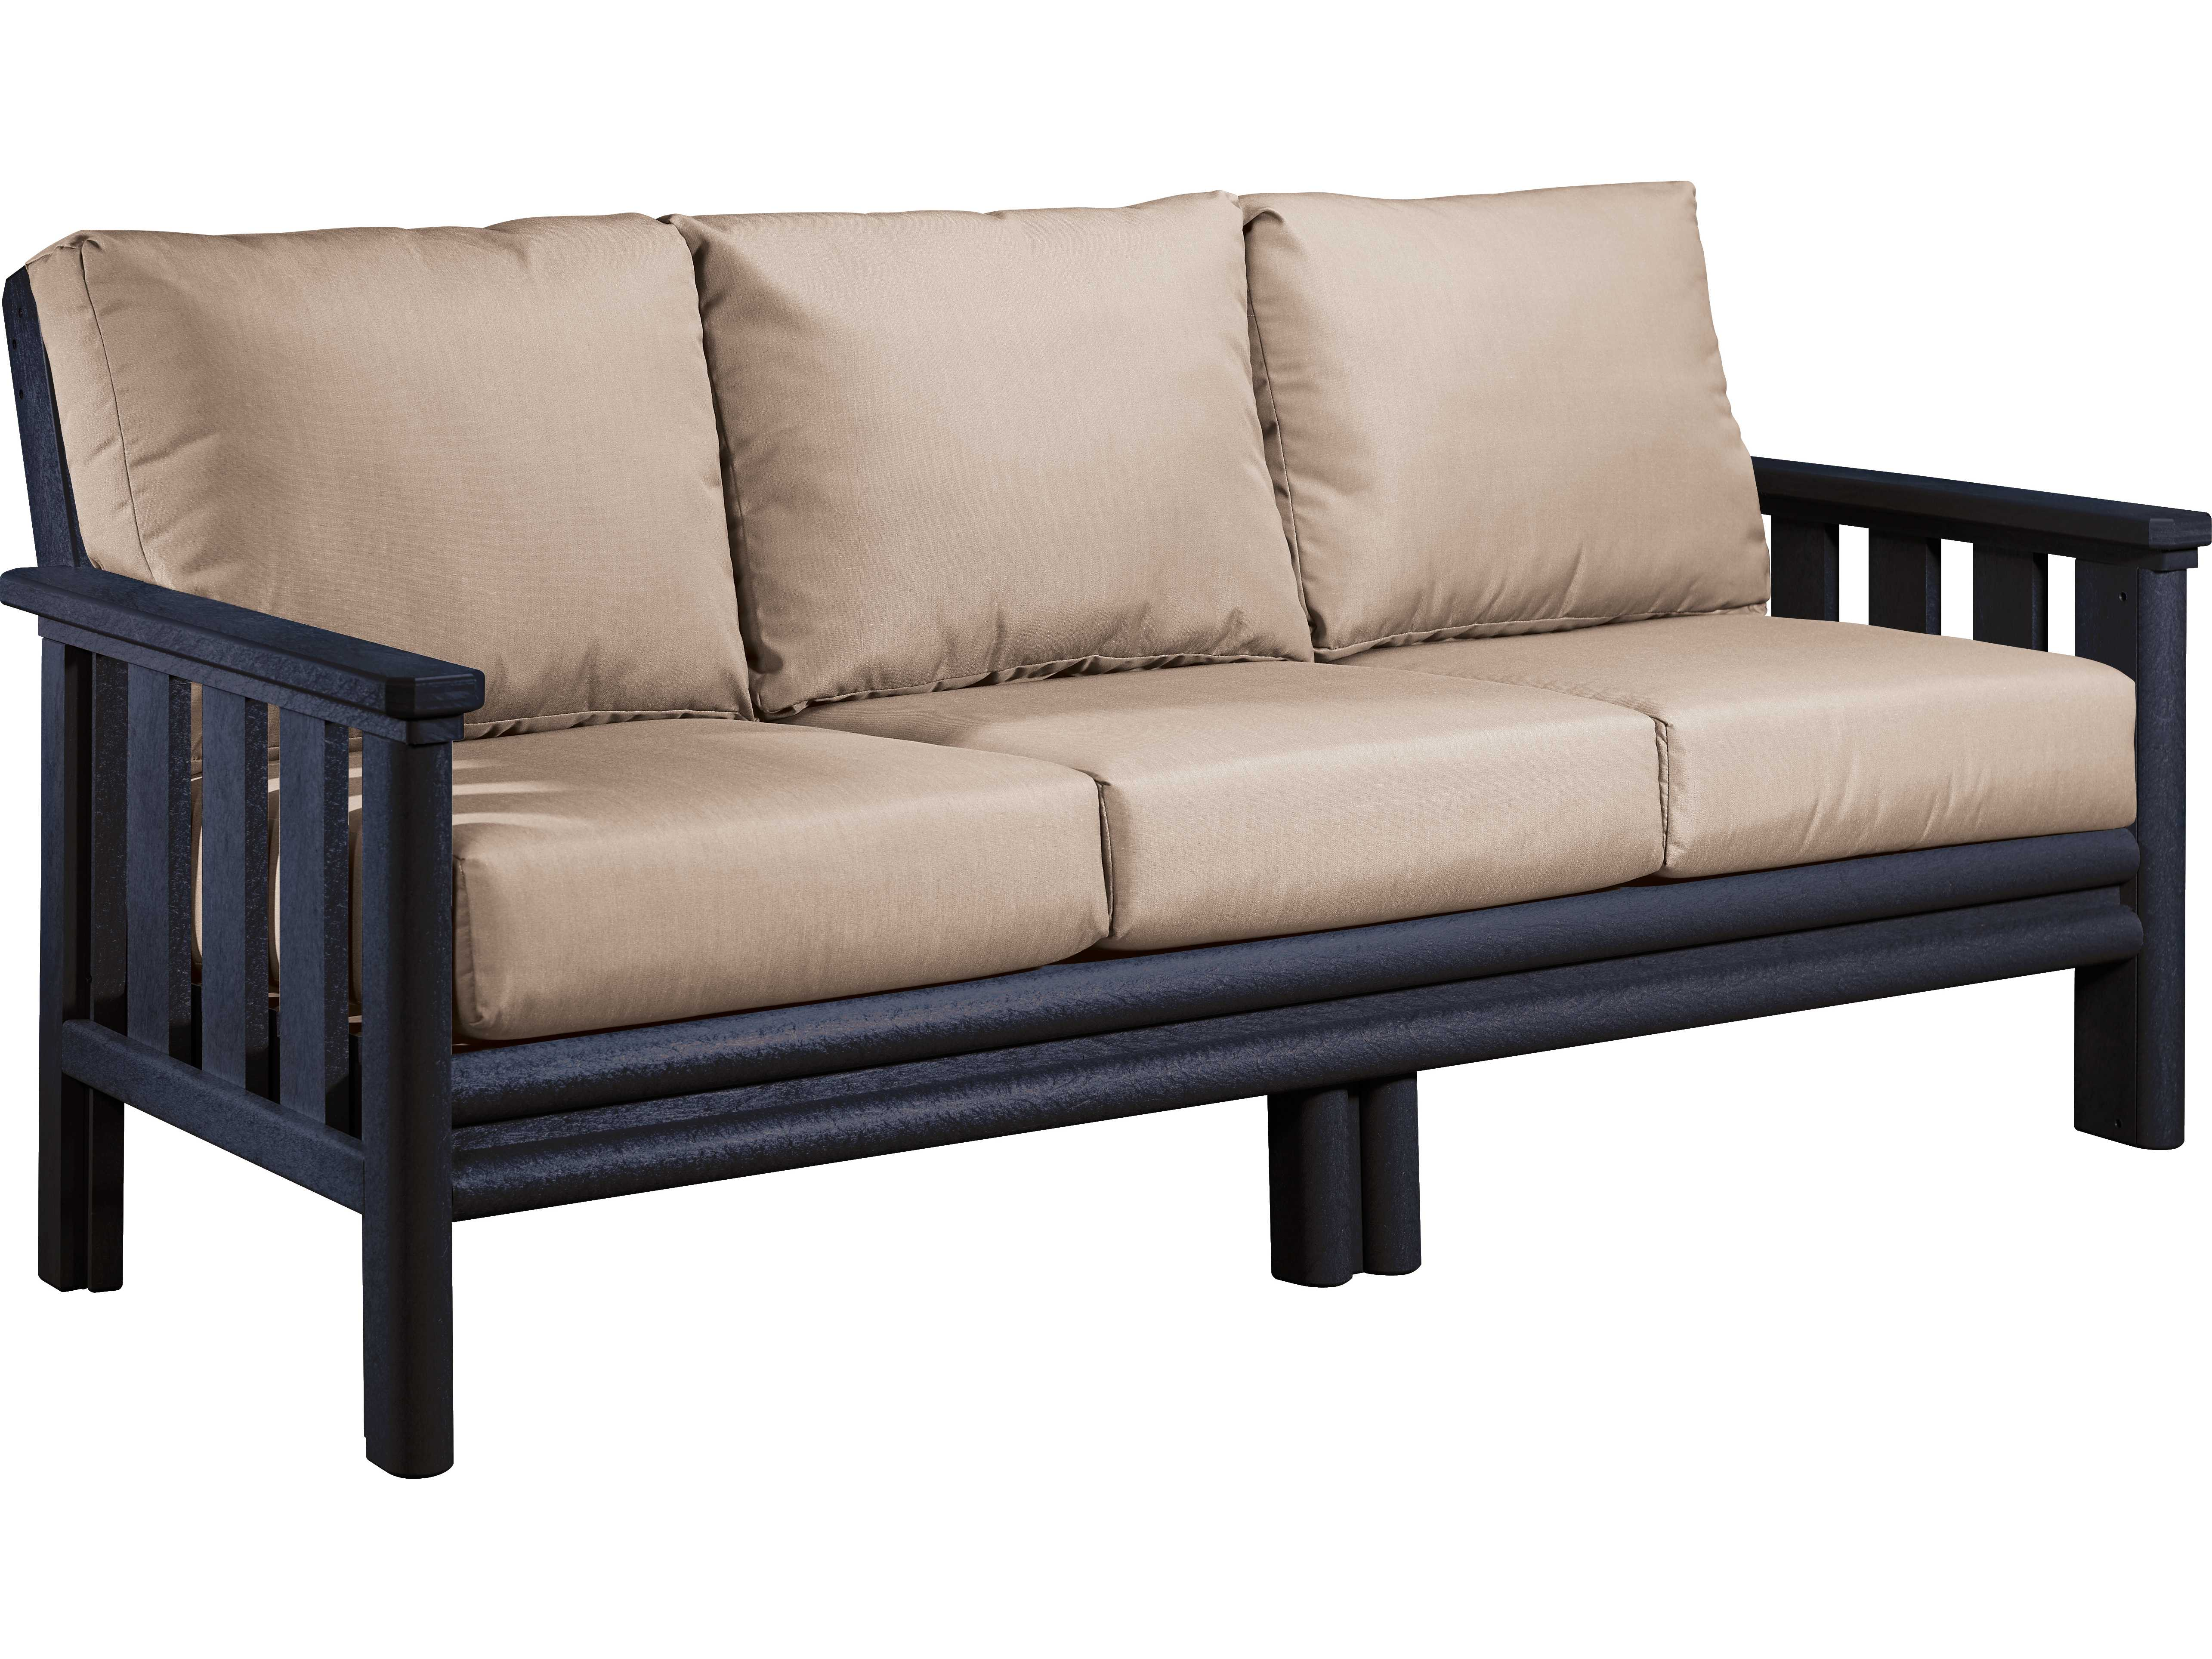 how to recycle my sofa who makes the best quality sofas 2018 c r plastic stratford recycled ds143